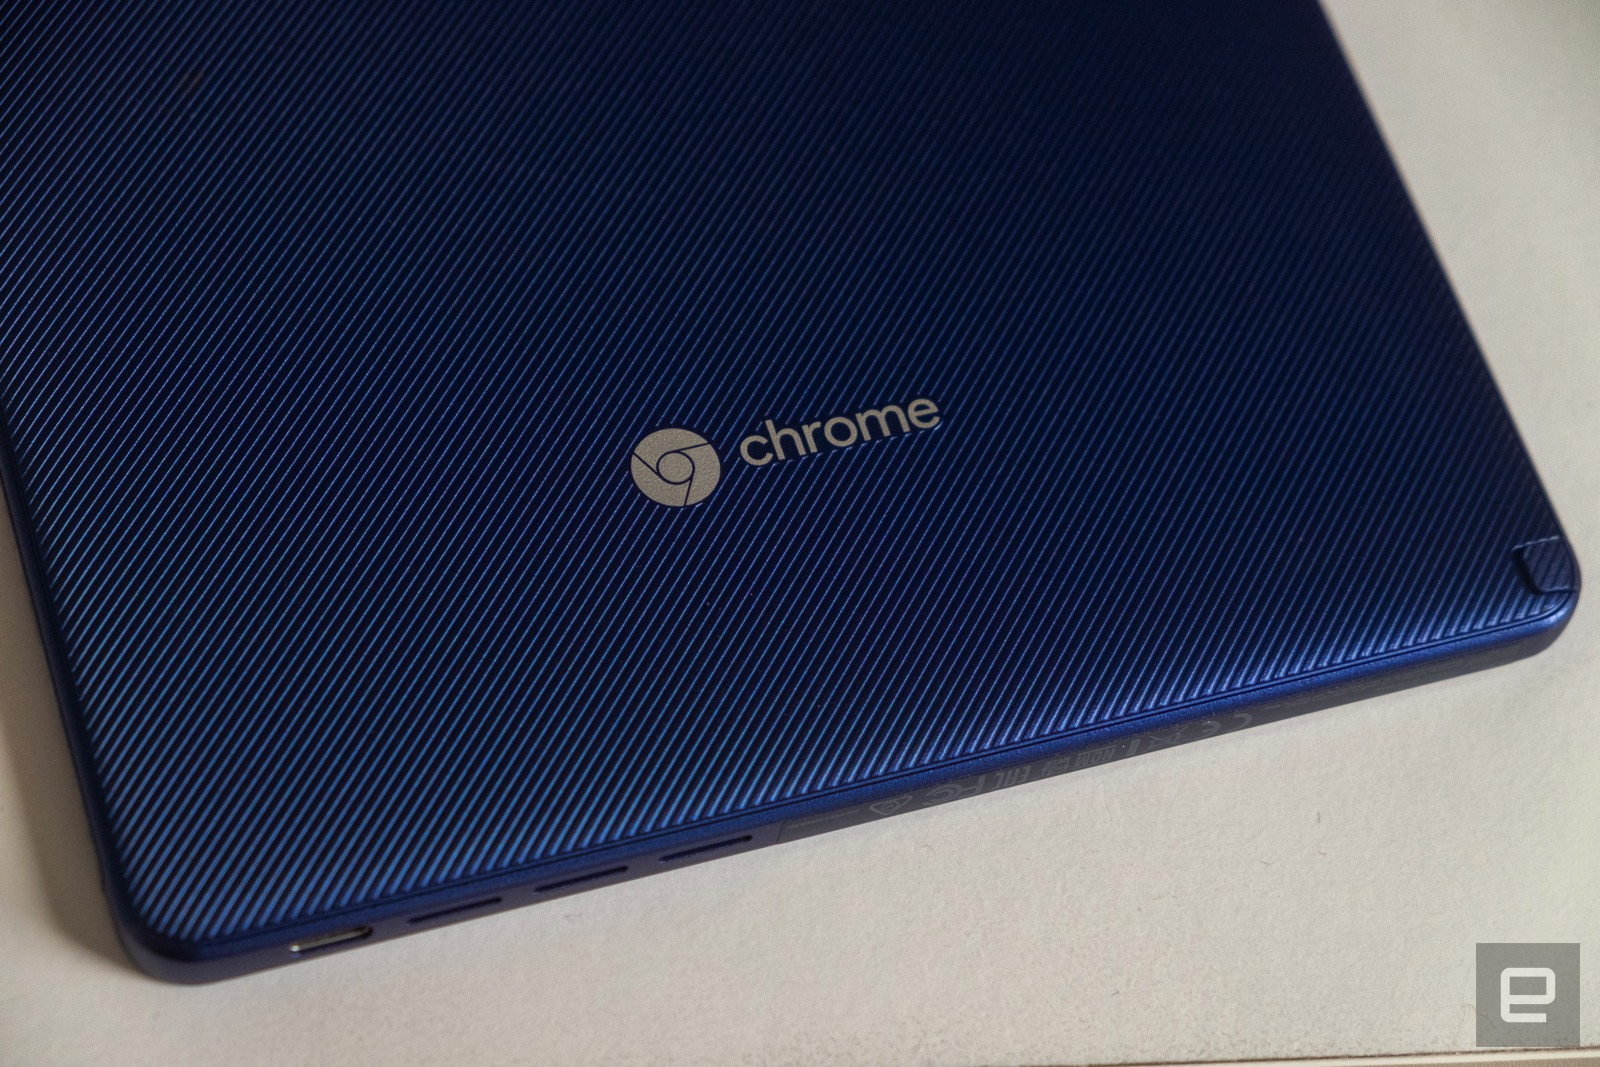 Chrome OS on a tablet doesn't make a lot of sense